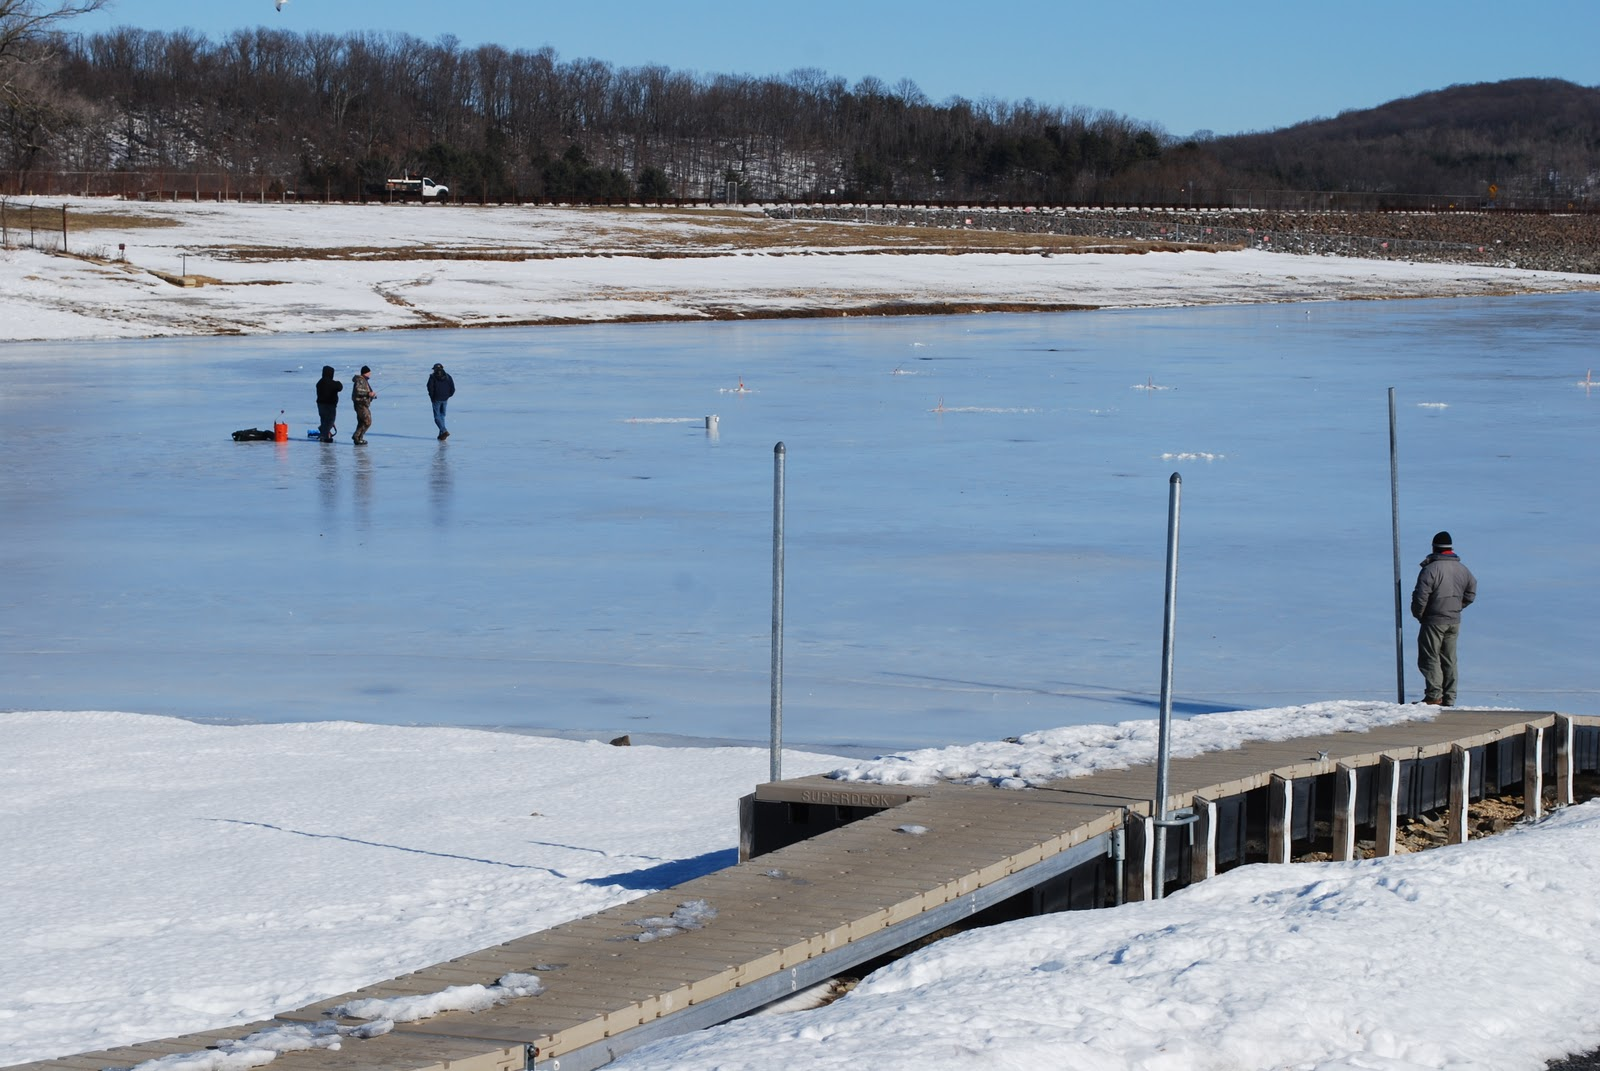 Litton 39 s fishing lines new jersey ice fishing in question for Round valley reservoir fishing